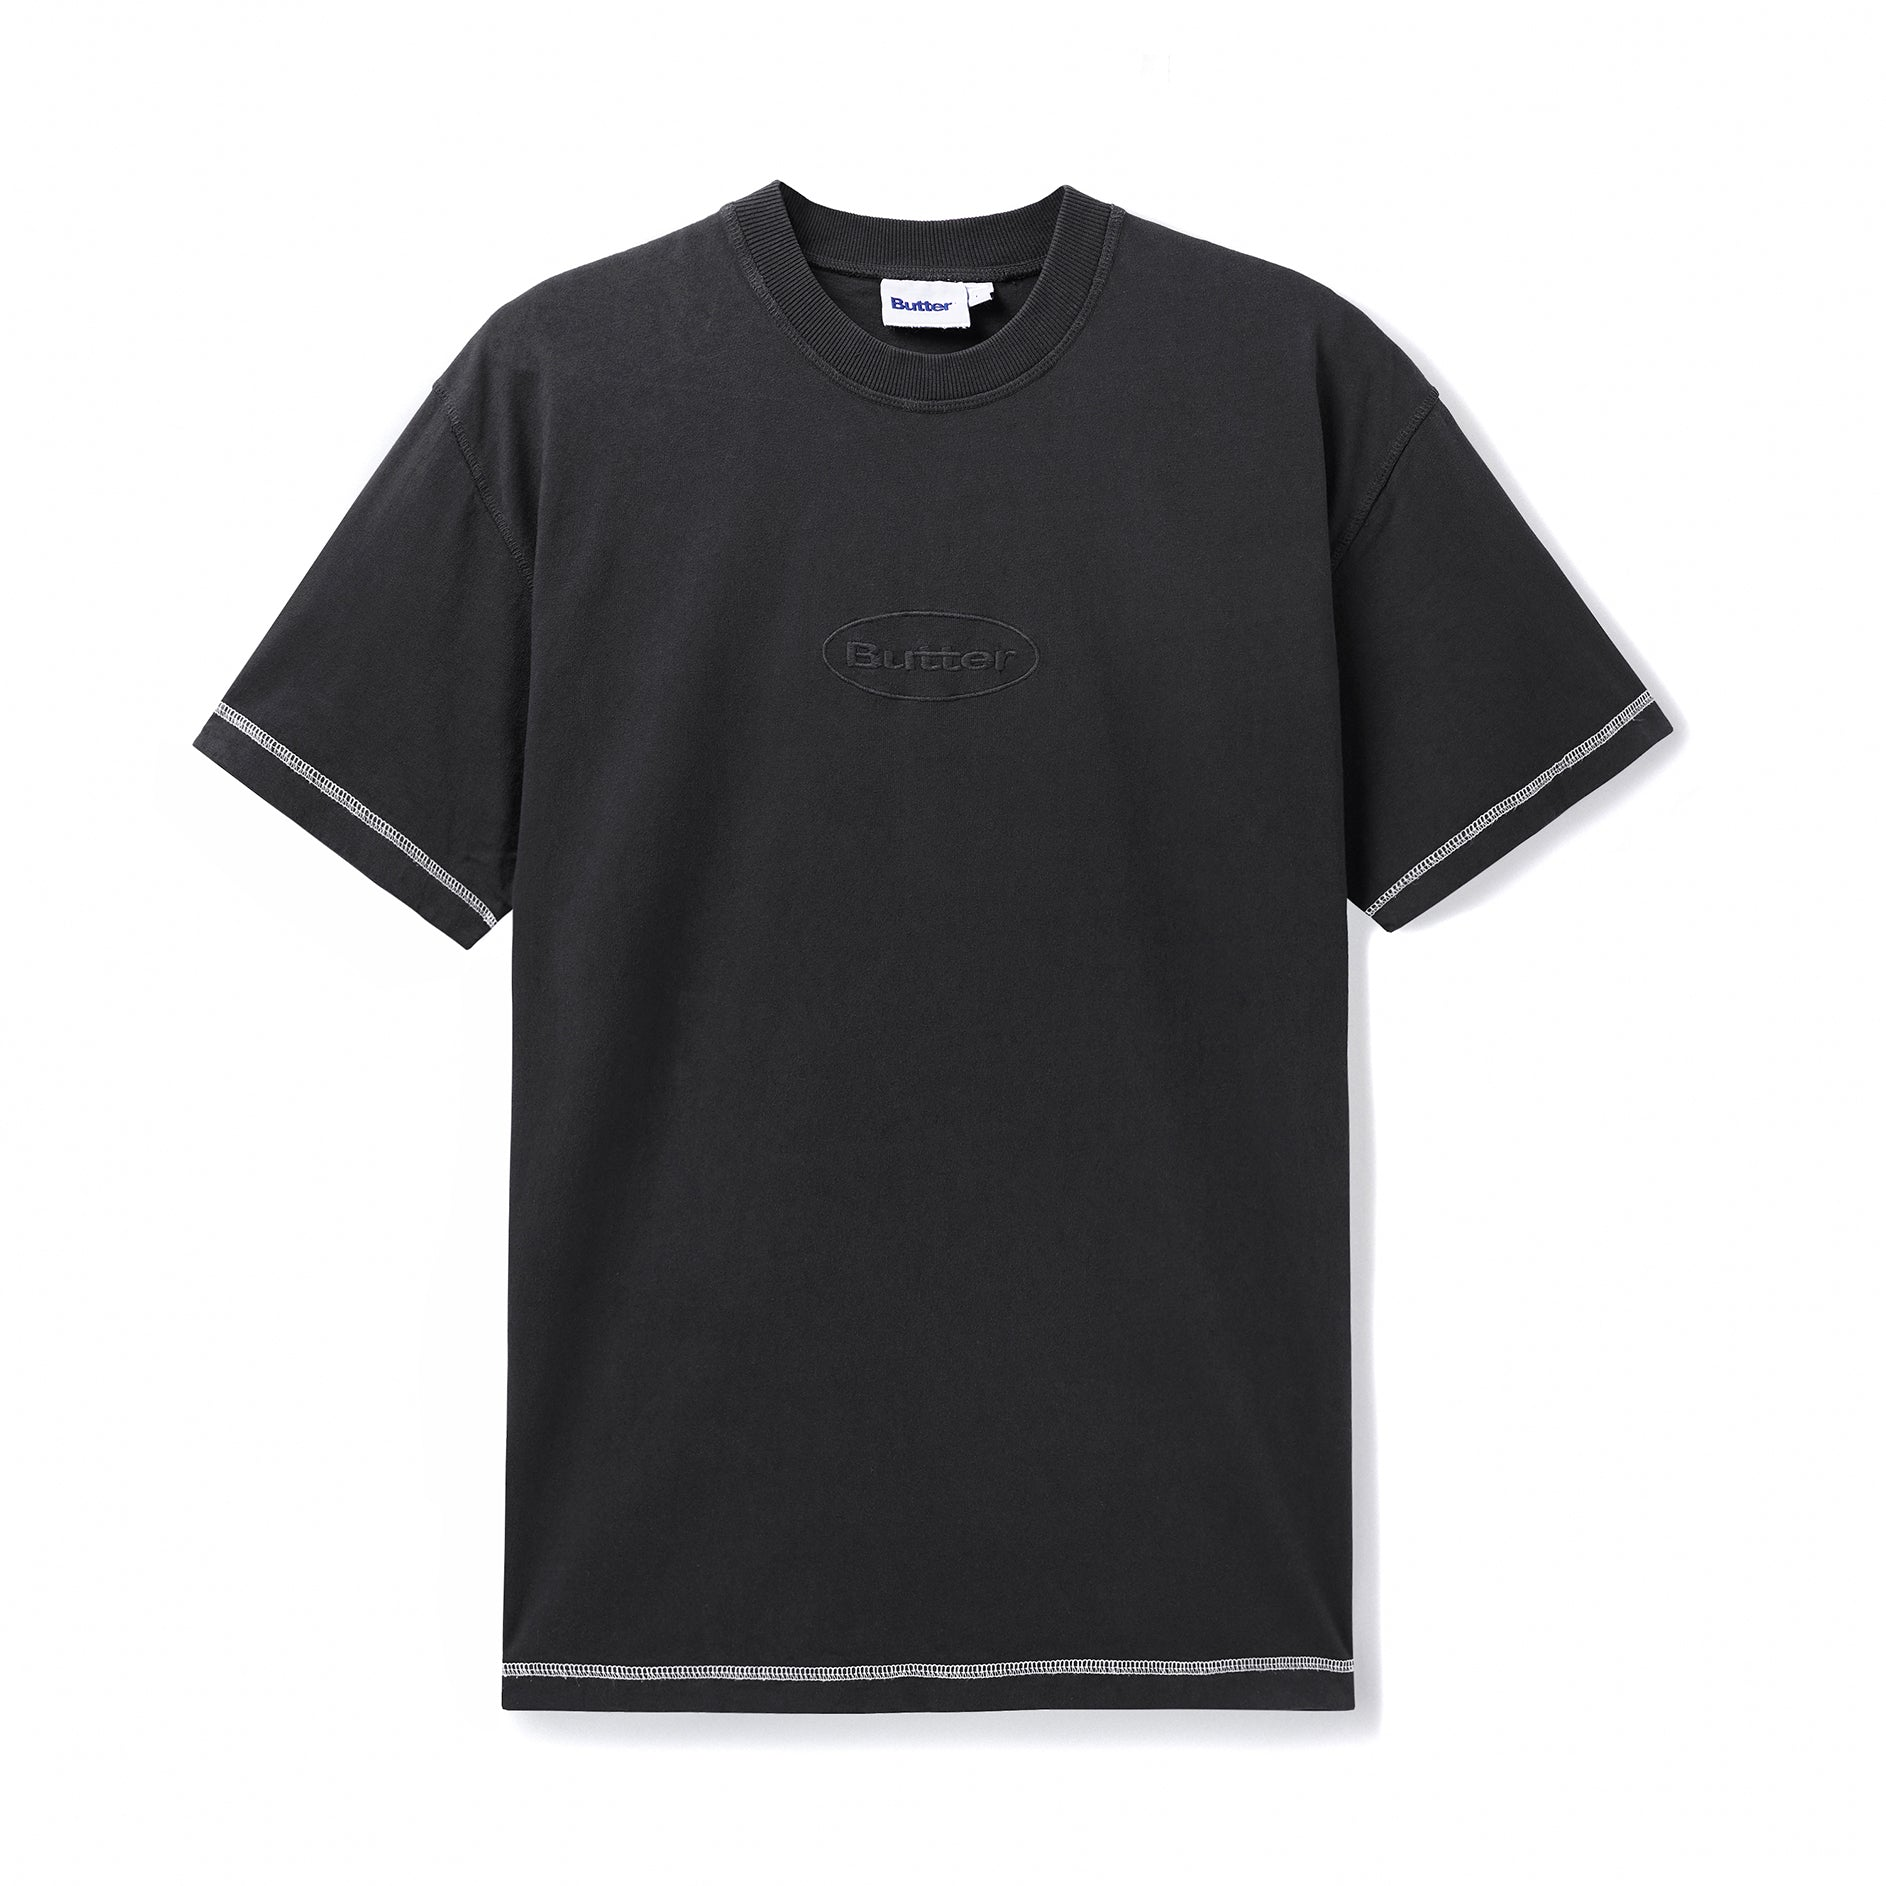 Butter Goods Chain Stitch Tee Product Photo #1